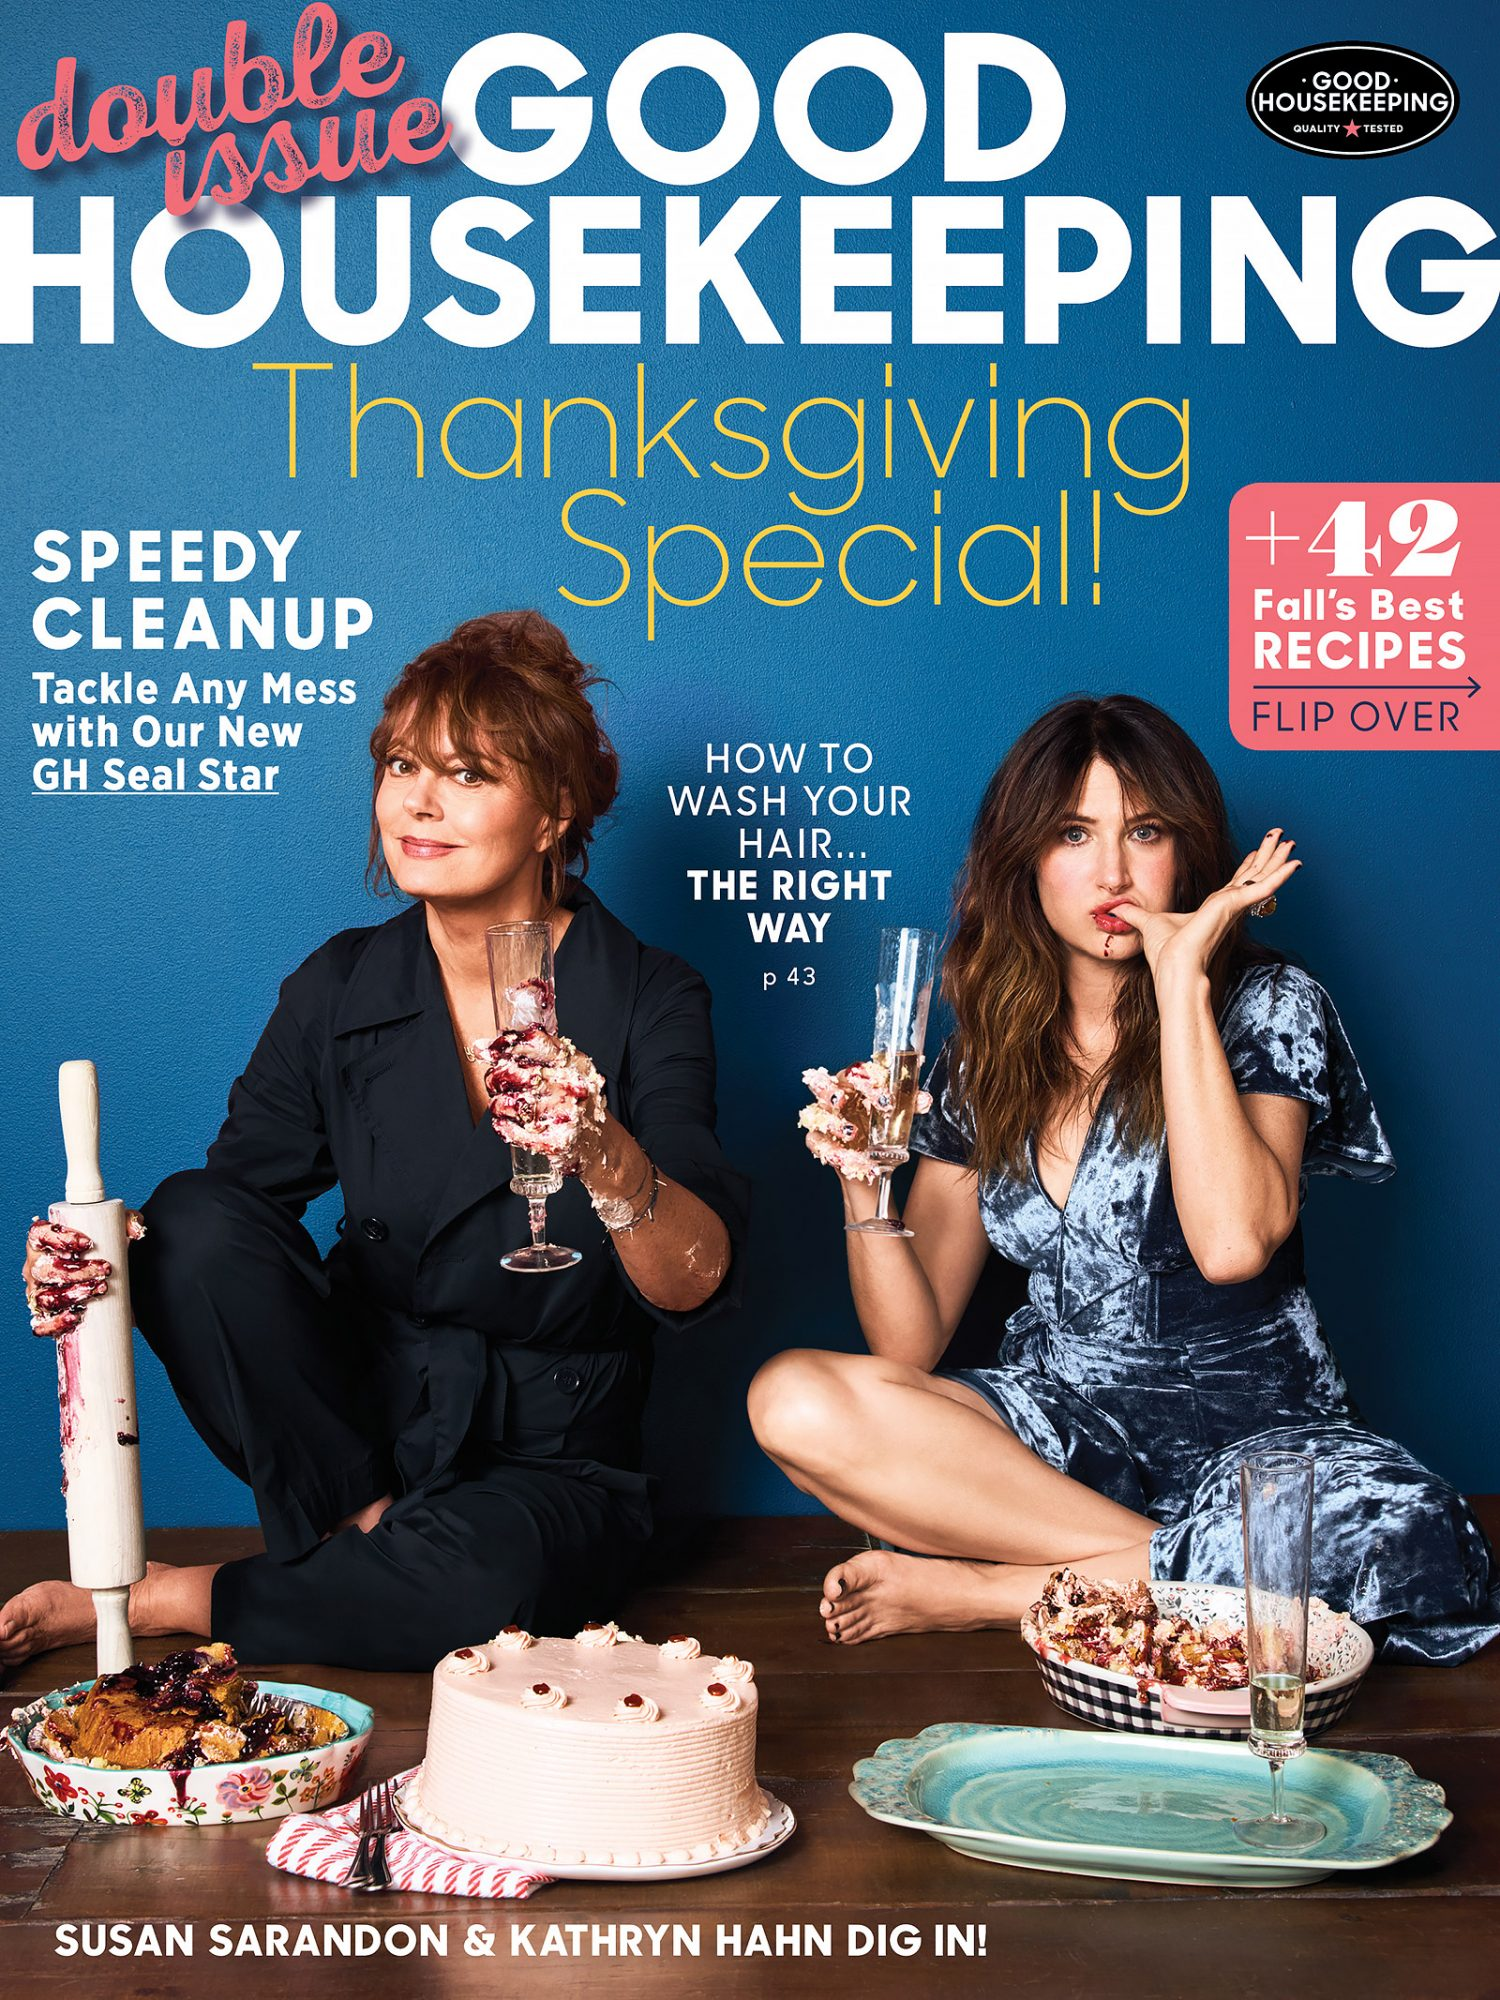 Susan Sarandon +Kathryn Hahn - Good HousekeepingPhoto: Chris Craymer